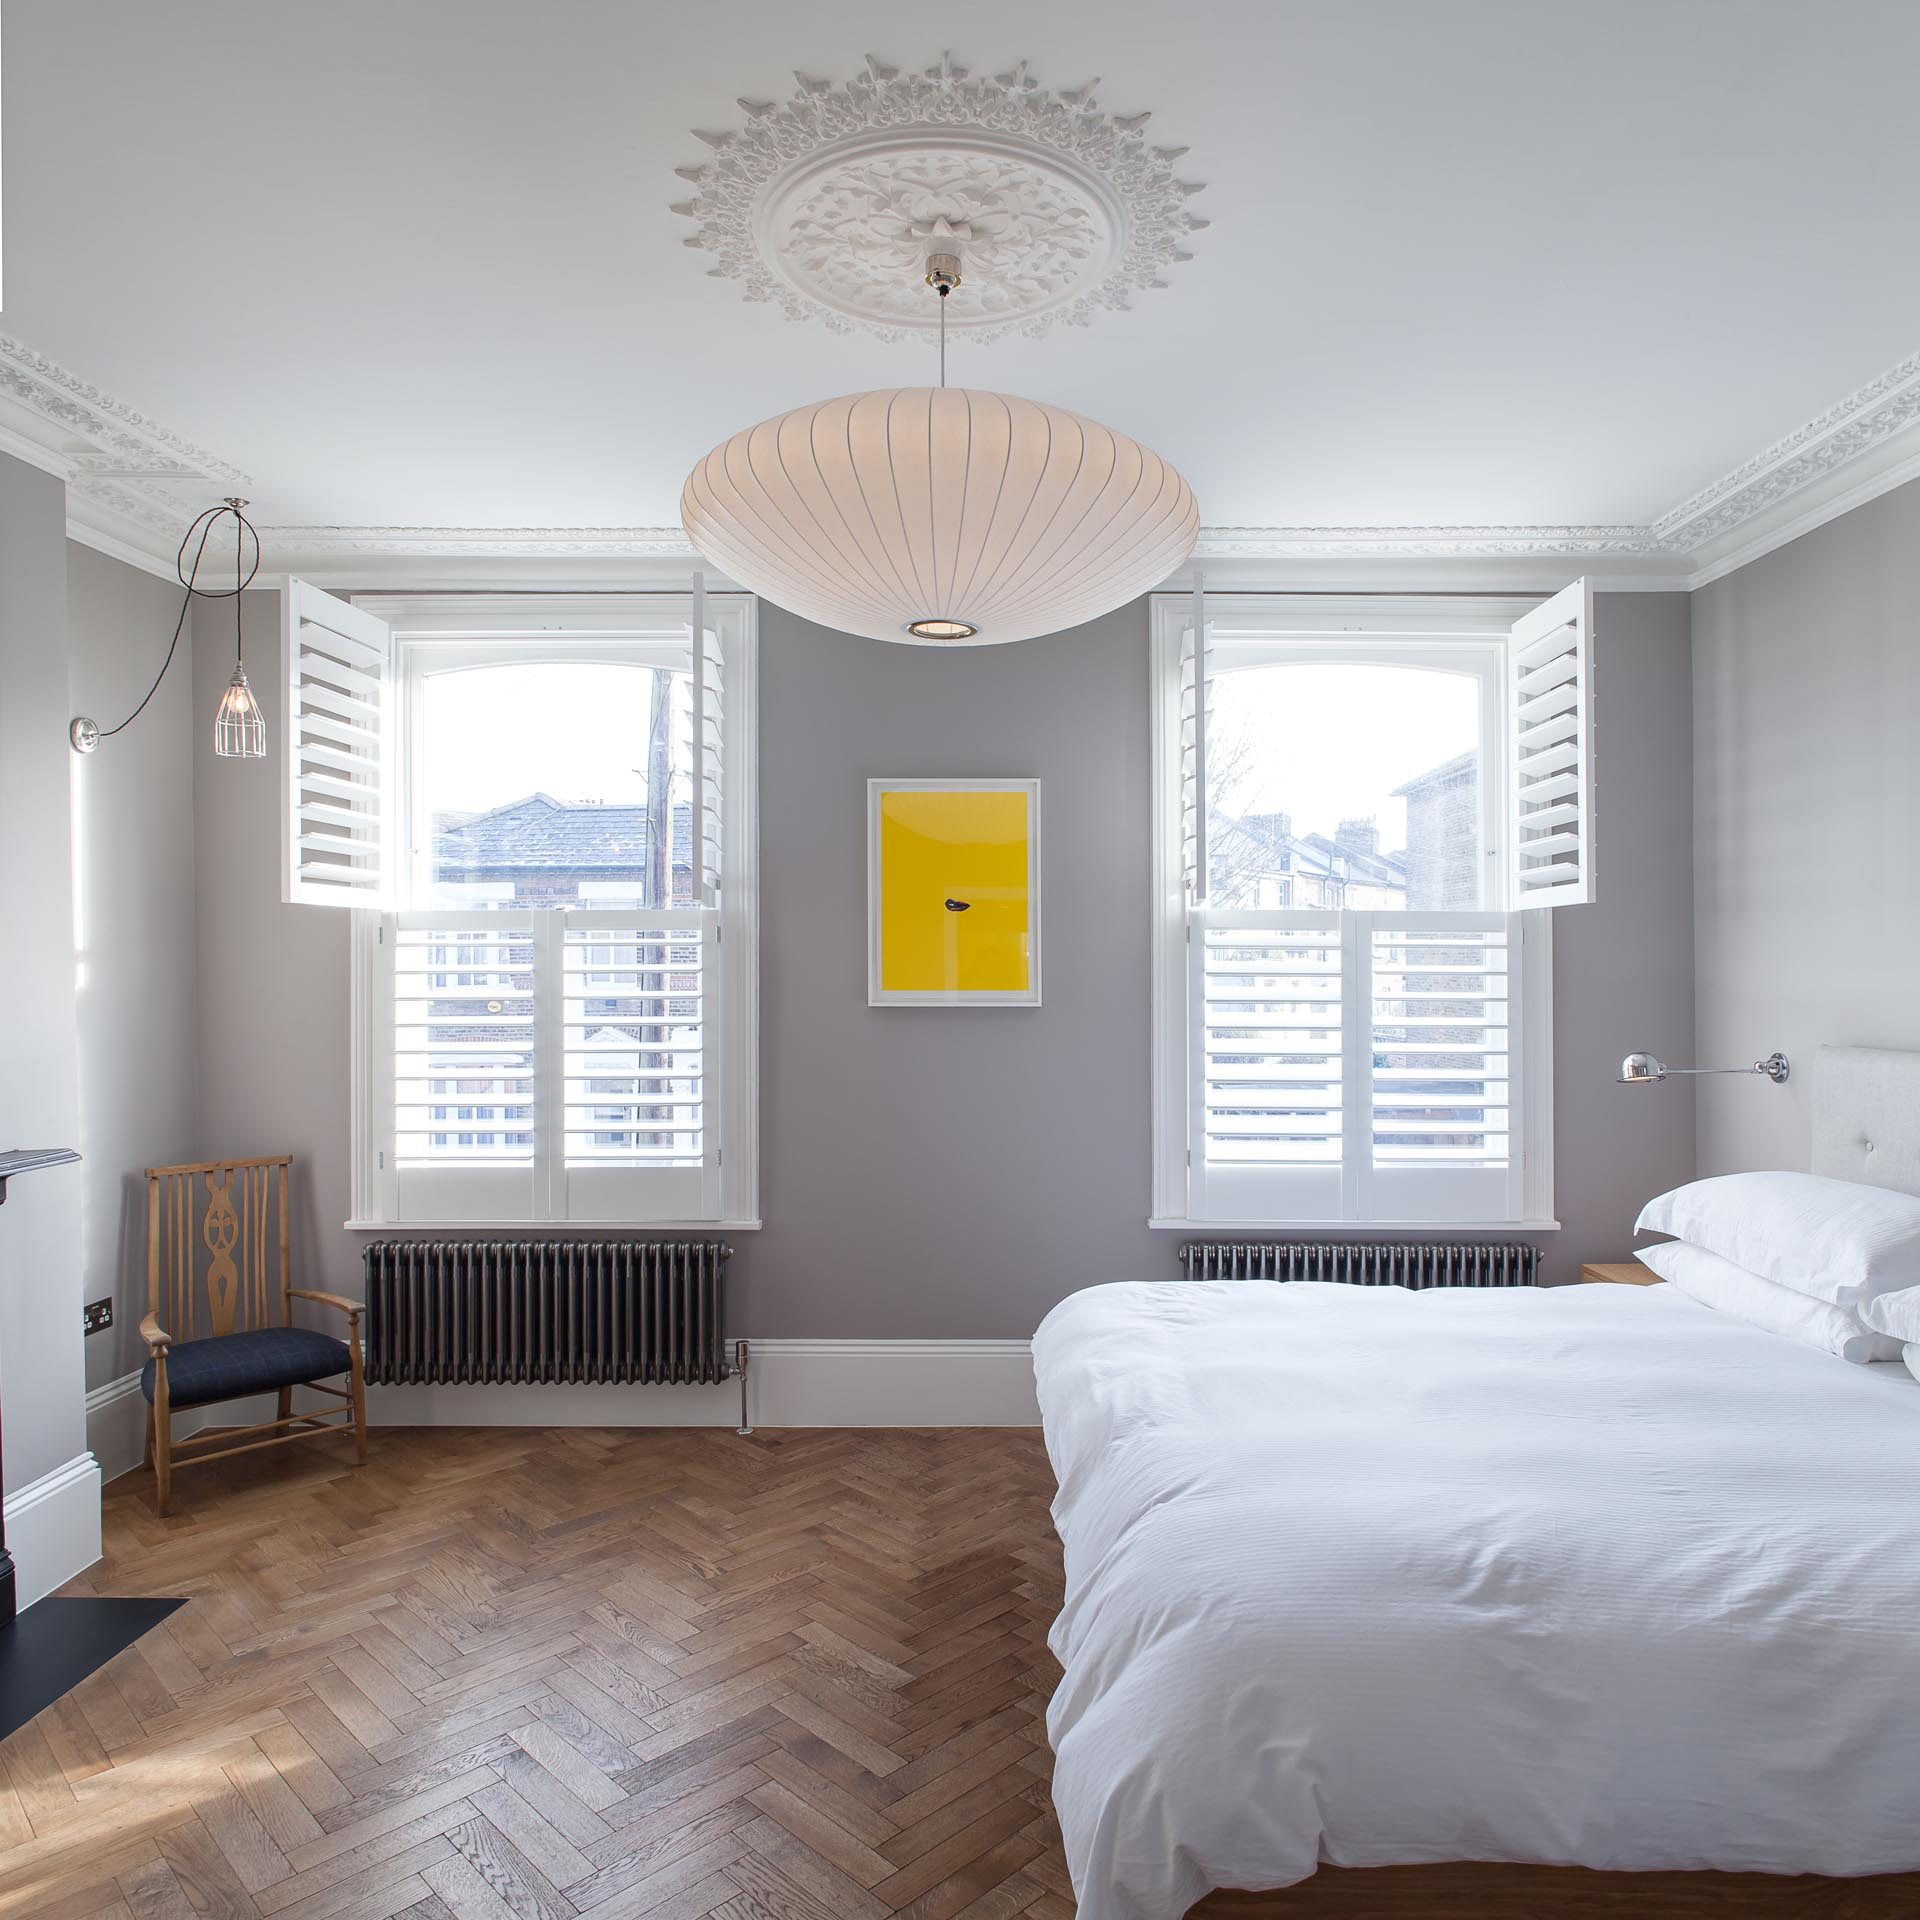 A contemporary bedroom with gray walls accented by white trim and window shutters.